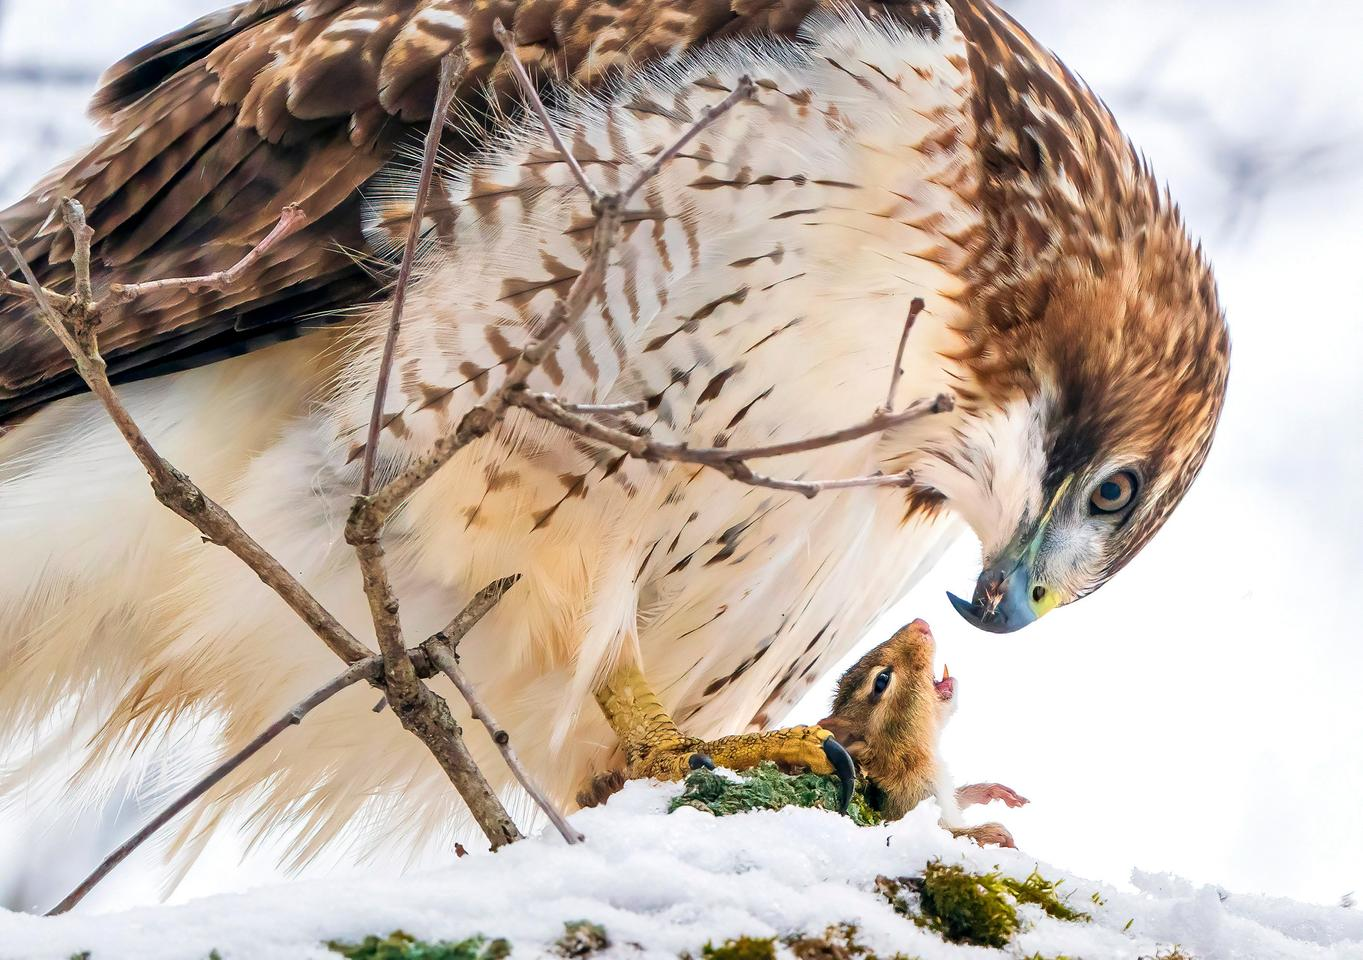 A Red-tailed Hawk holds an open-mouthed chipmunk in its yellow talons. Sony a9ii with Sony FE 200- 600mm F5.6-6.3 G OSS lens; 1/2000 second at f/7.1; ISO 3200